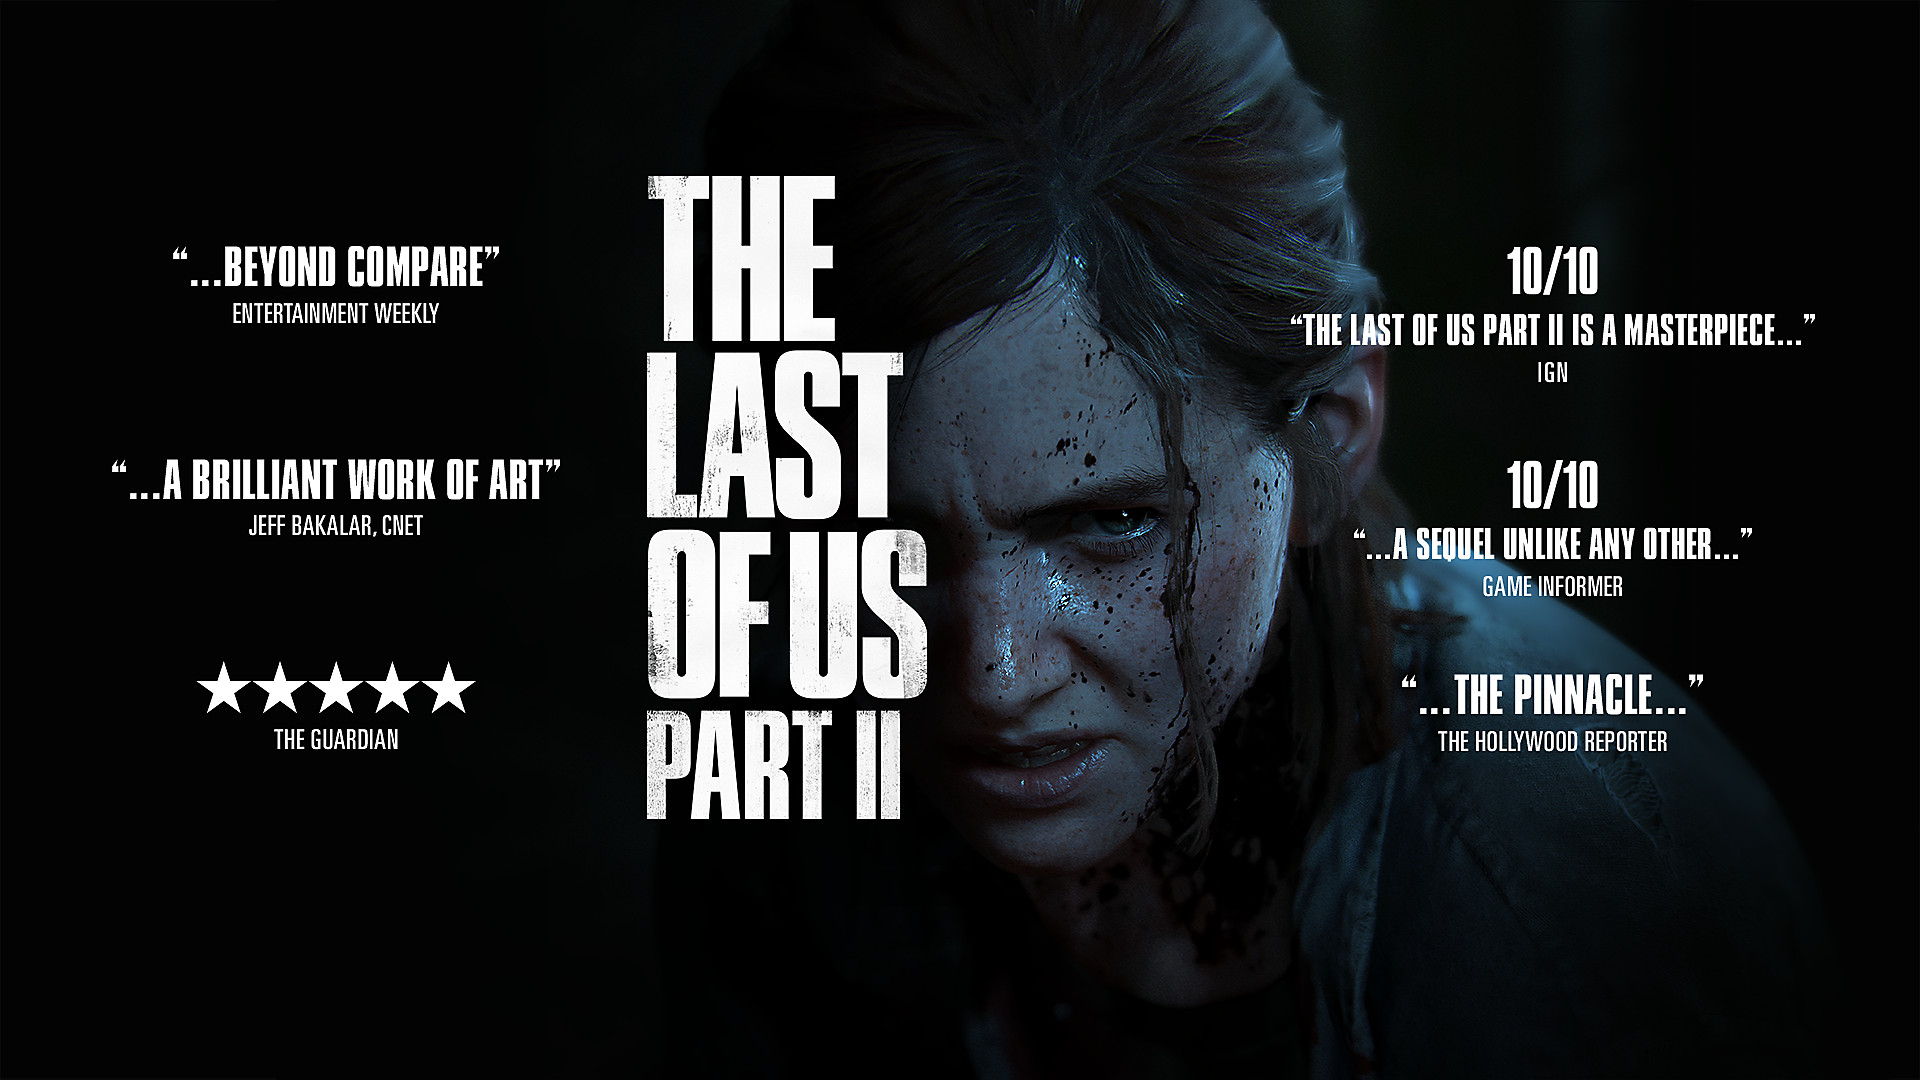 The Last of Us Part II Game | PS4 - PlayStation